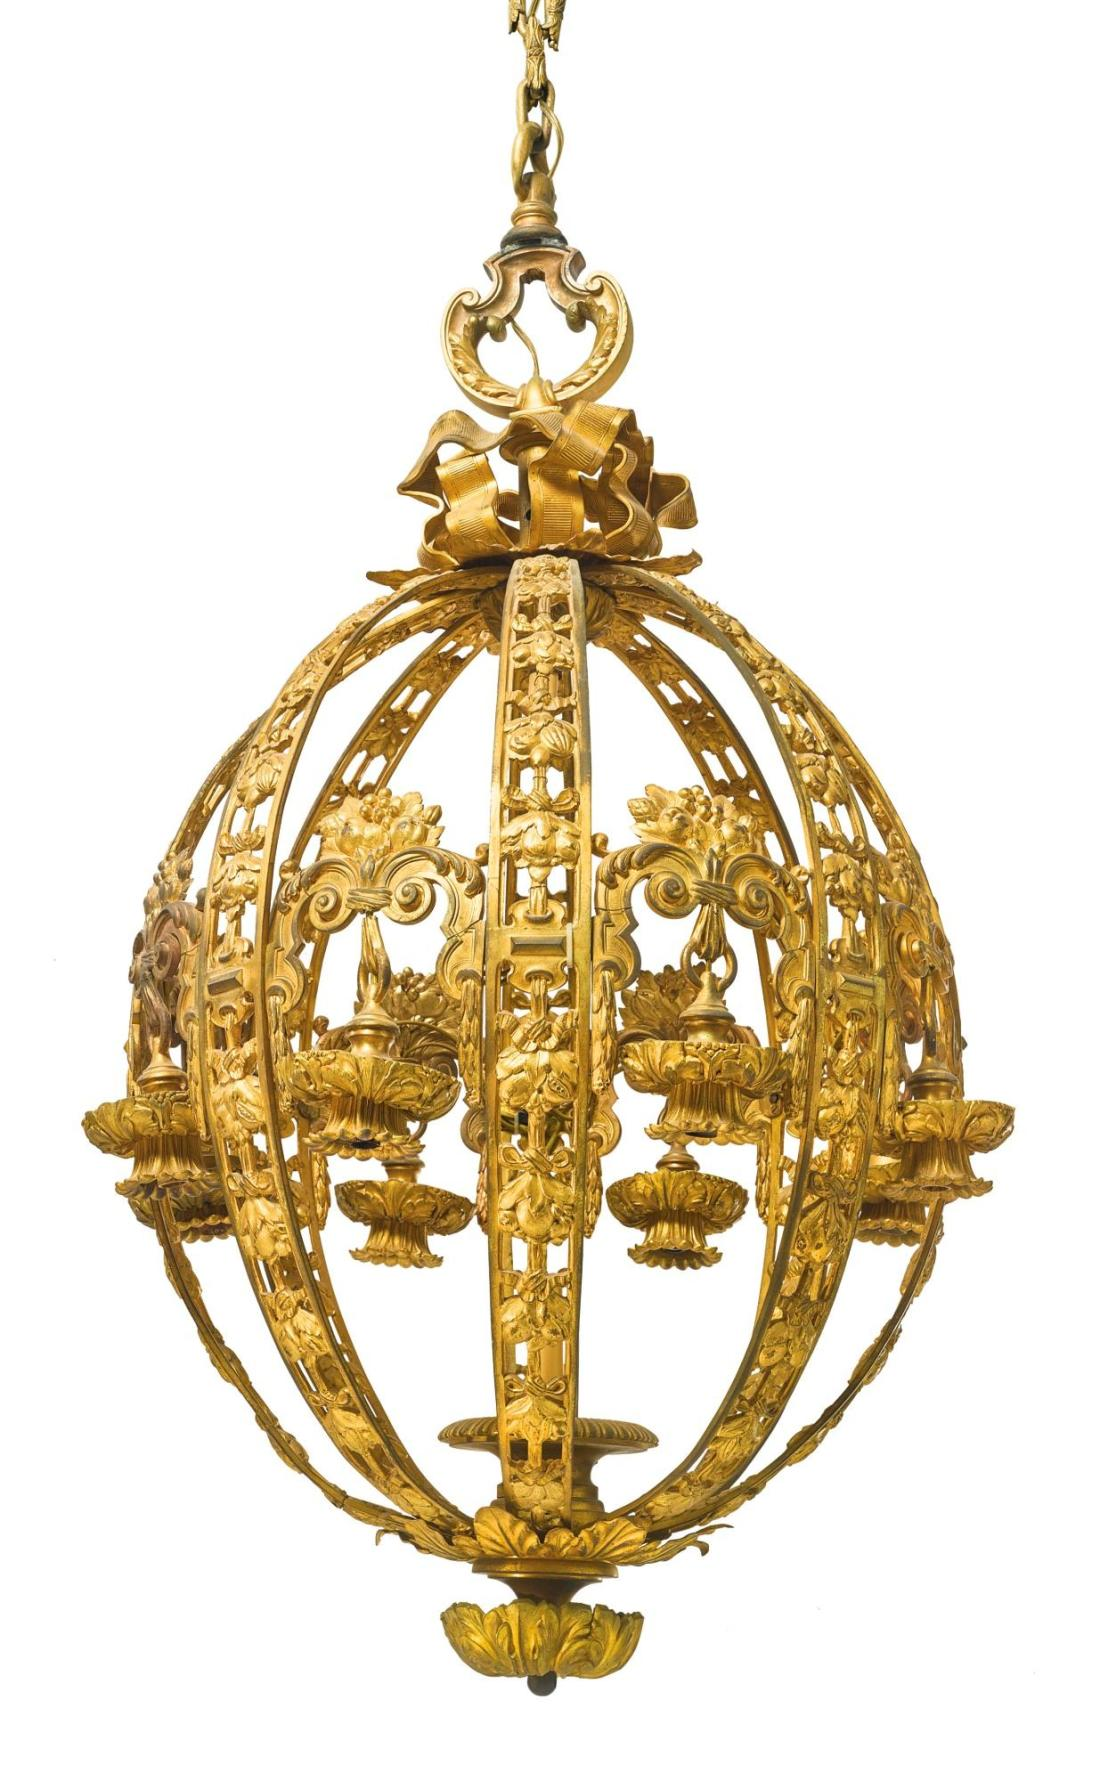 Ten light chandelier.ca. 1900-1925. Gilt bronze.